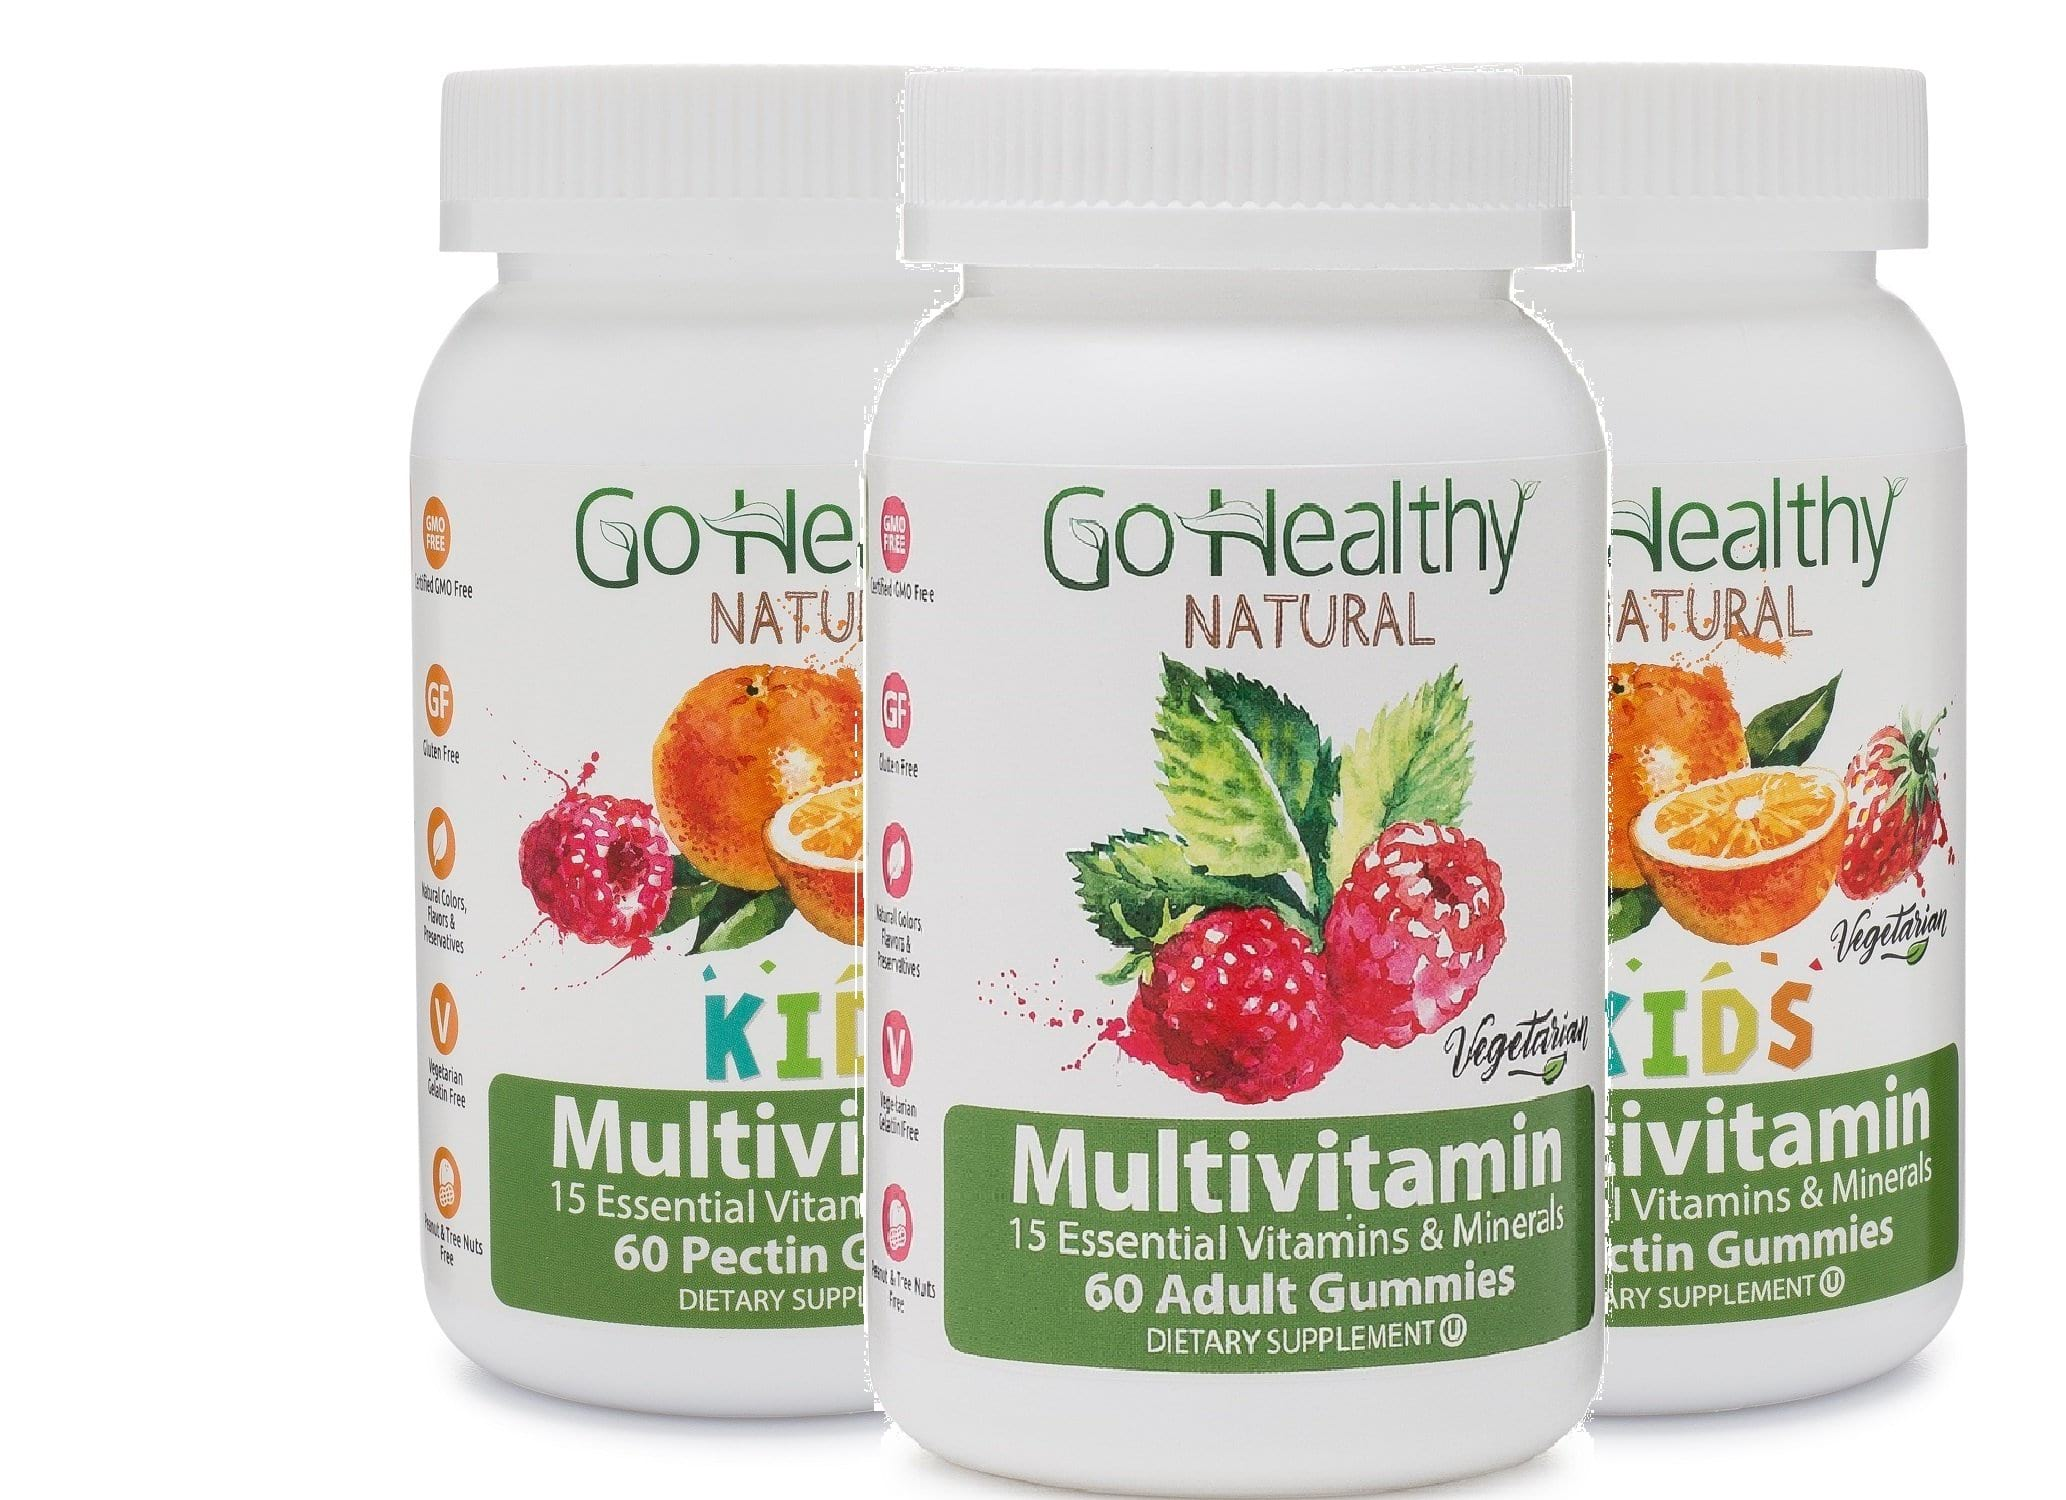 Multivitamin Gummies Family 3-Pack: 1 Adult Multivitamin Bottle + 2 Kids Multivitamin Bottles